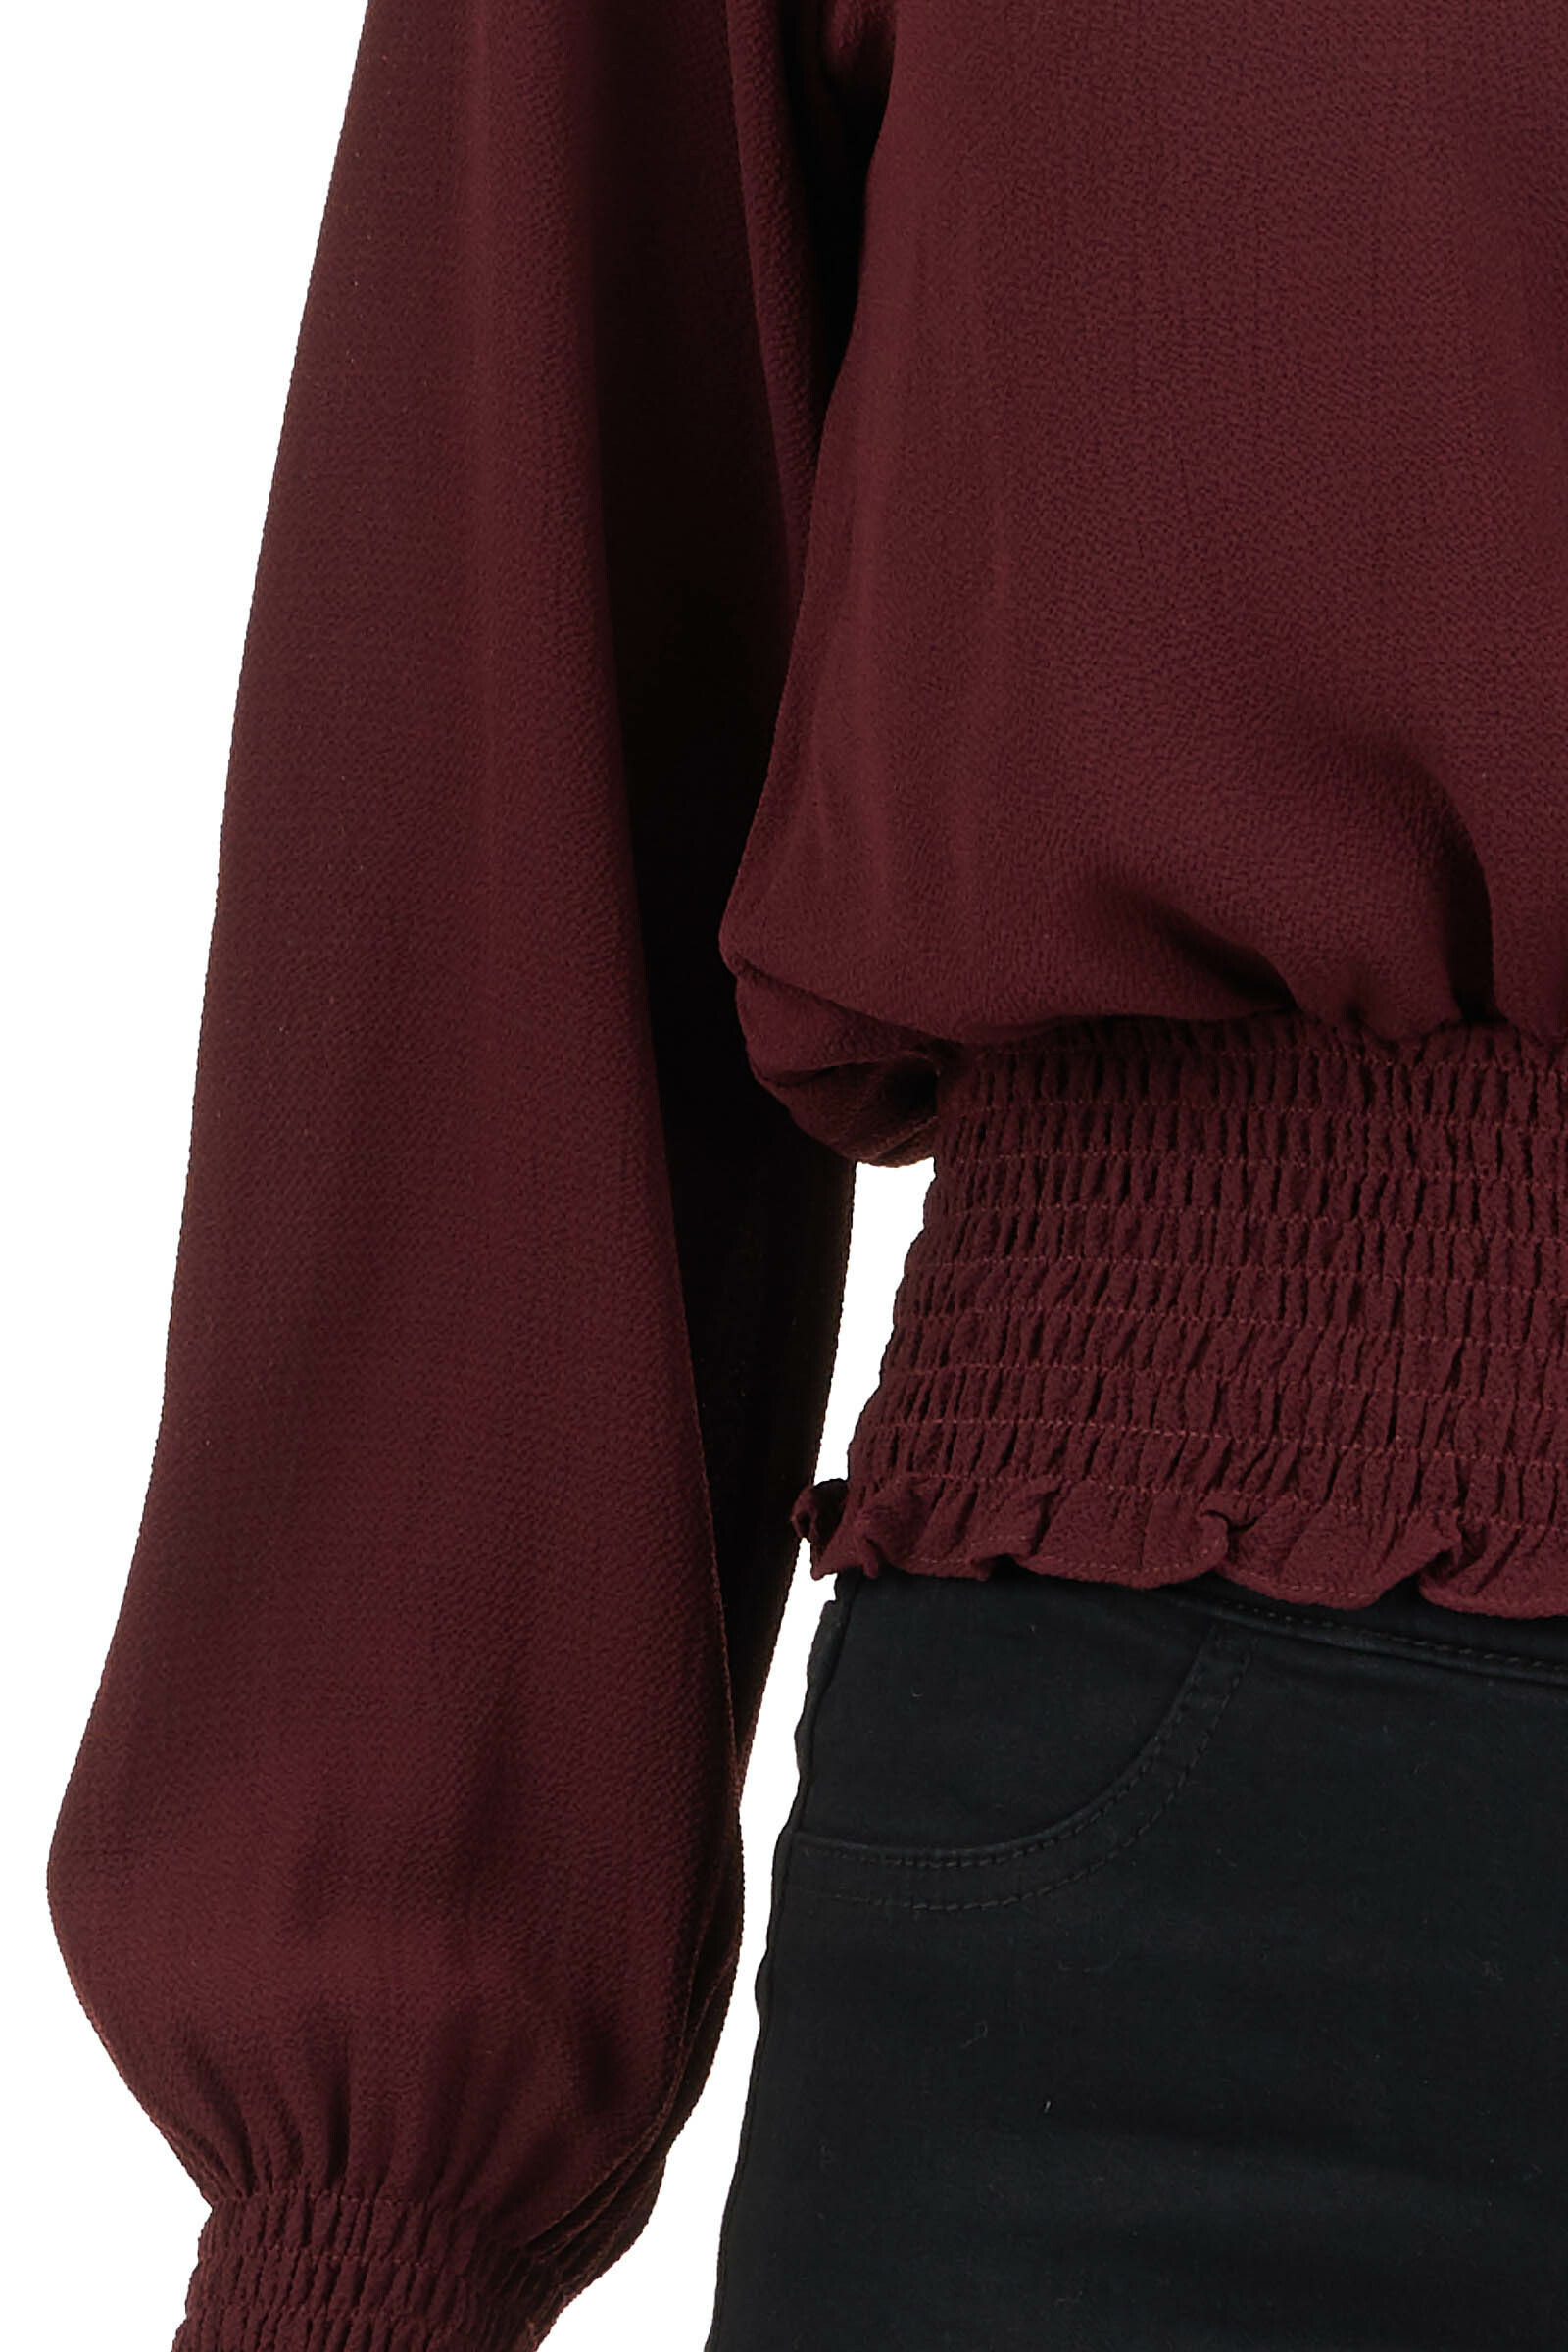 Burgundy High Neck Top with Smocked and Ruffle Details detail